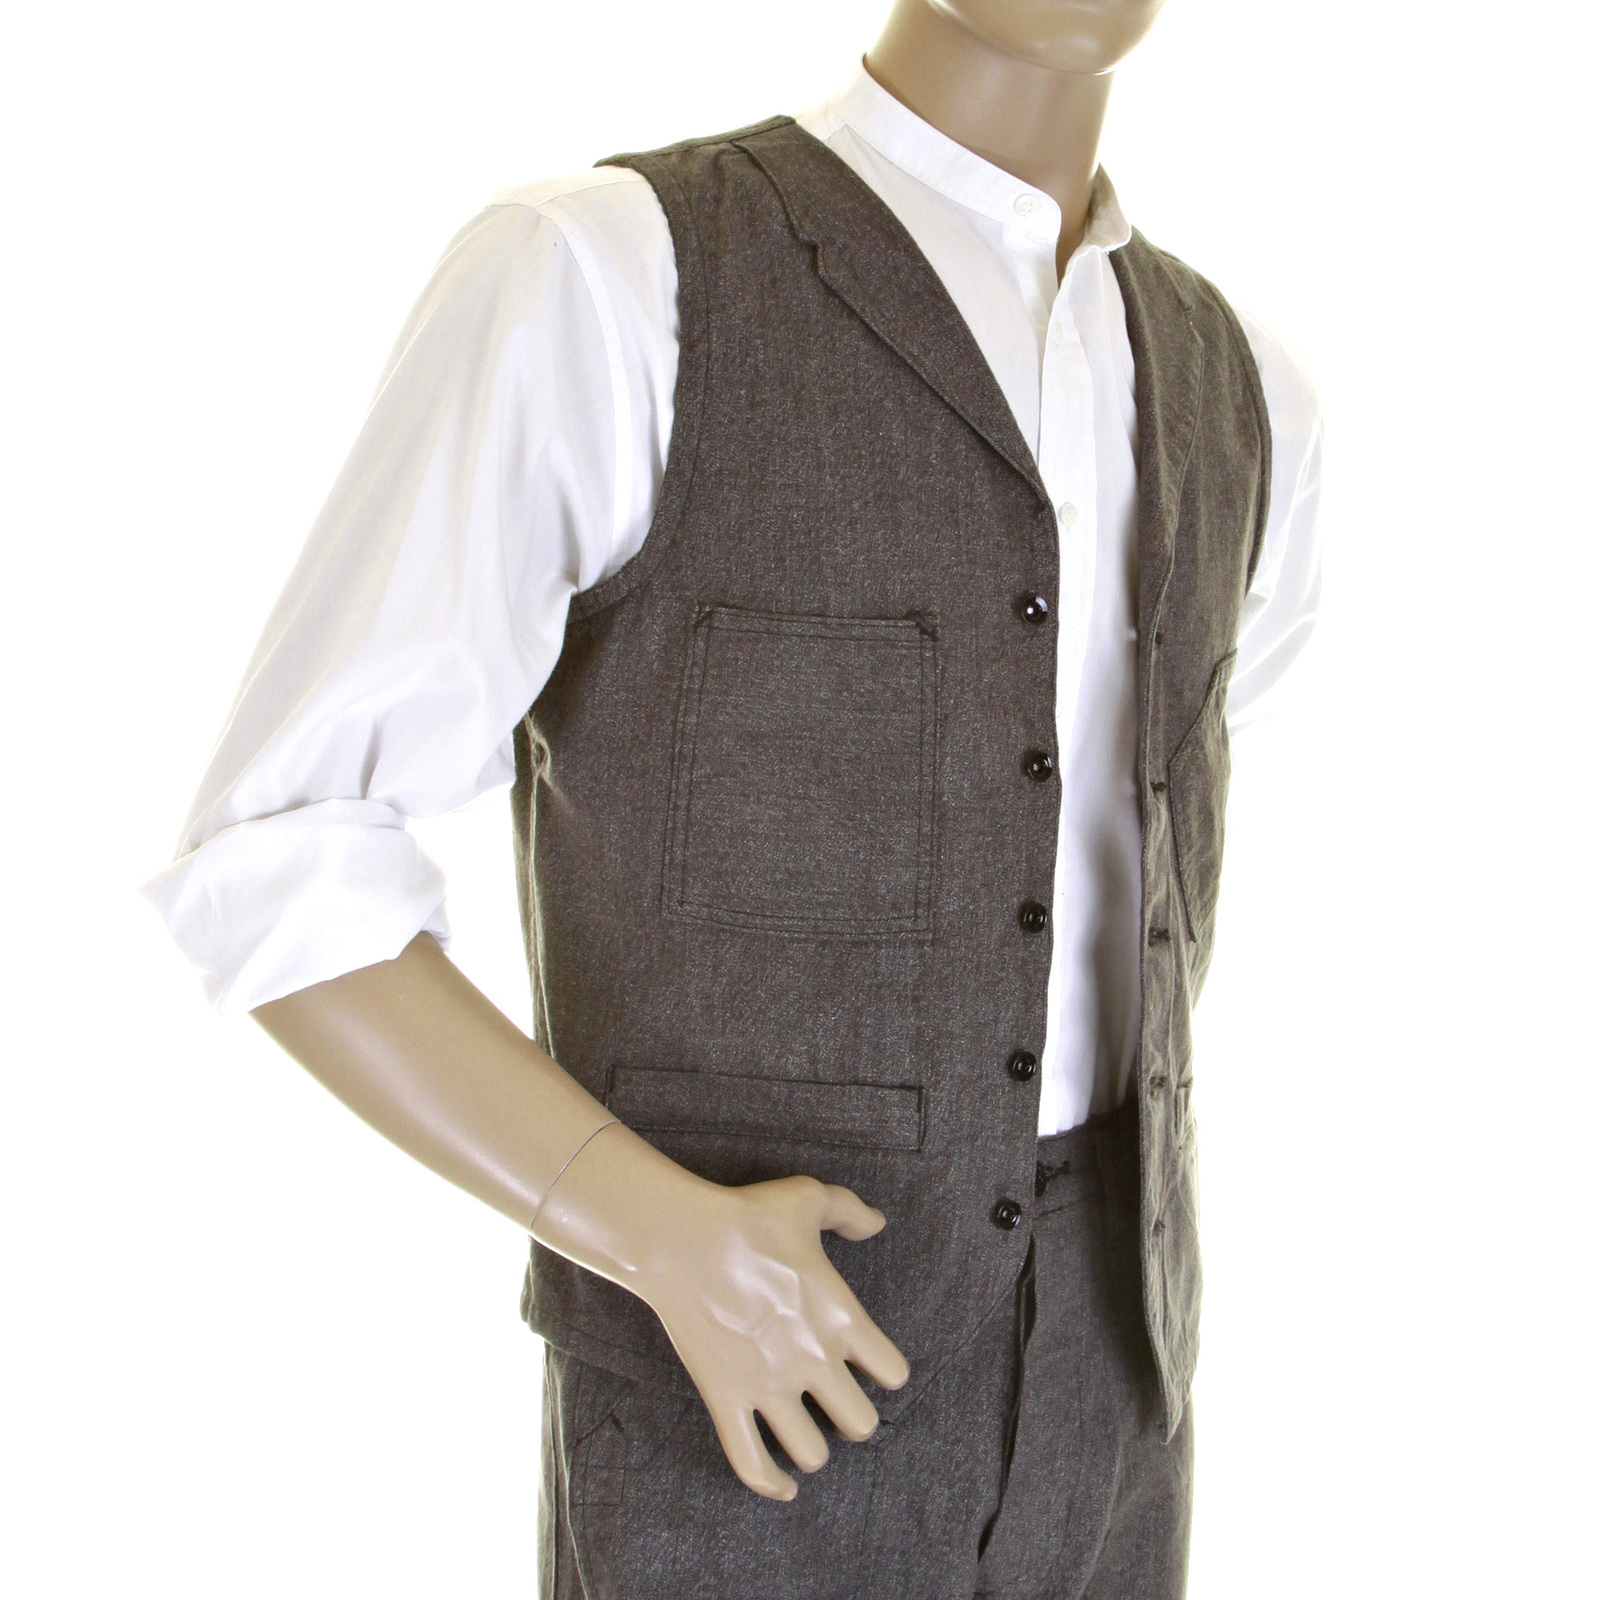 Buy The Charcoal Black Work Vest From Sugarcane Jeans